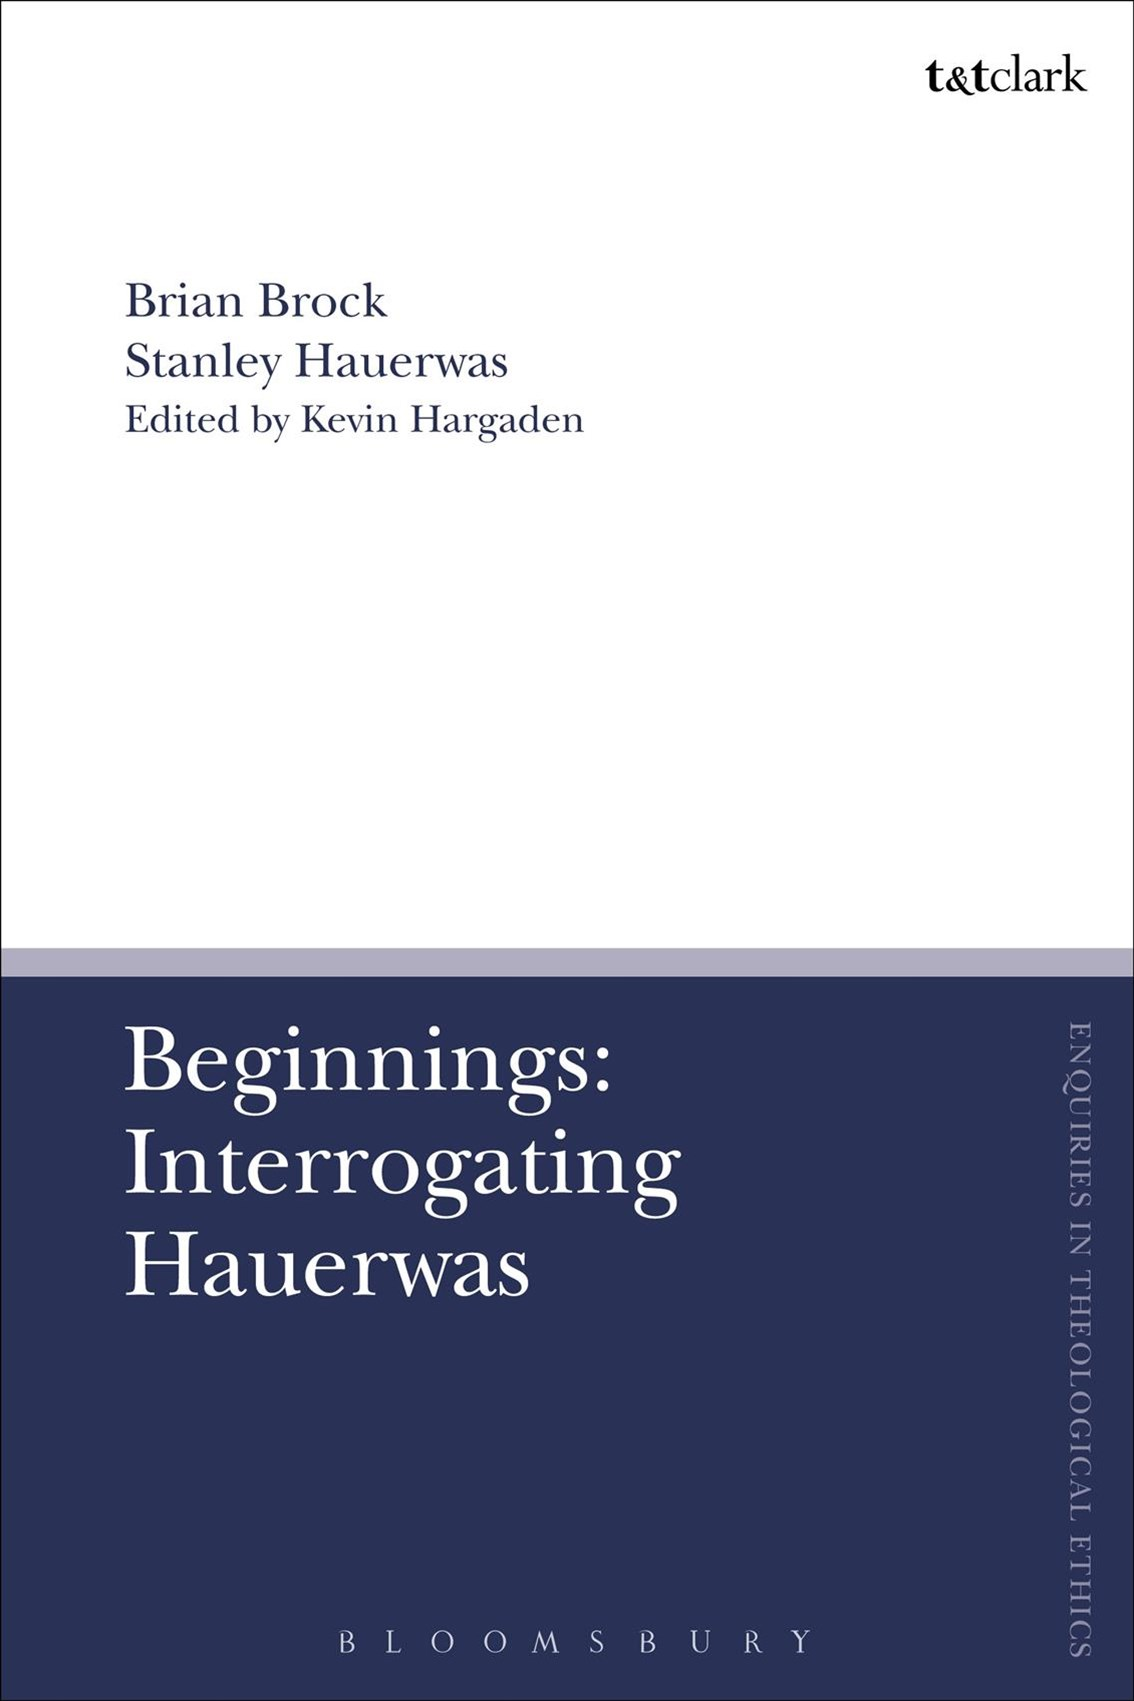 Beginnings: Interrogating Hauerwas